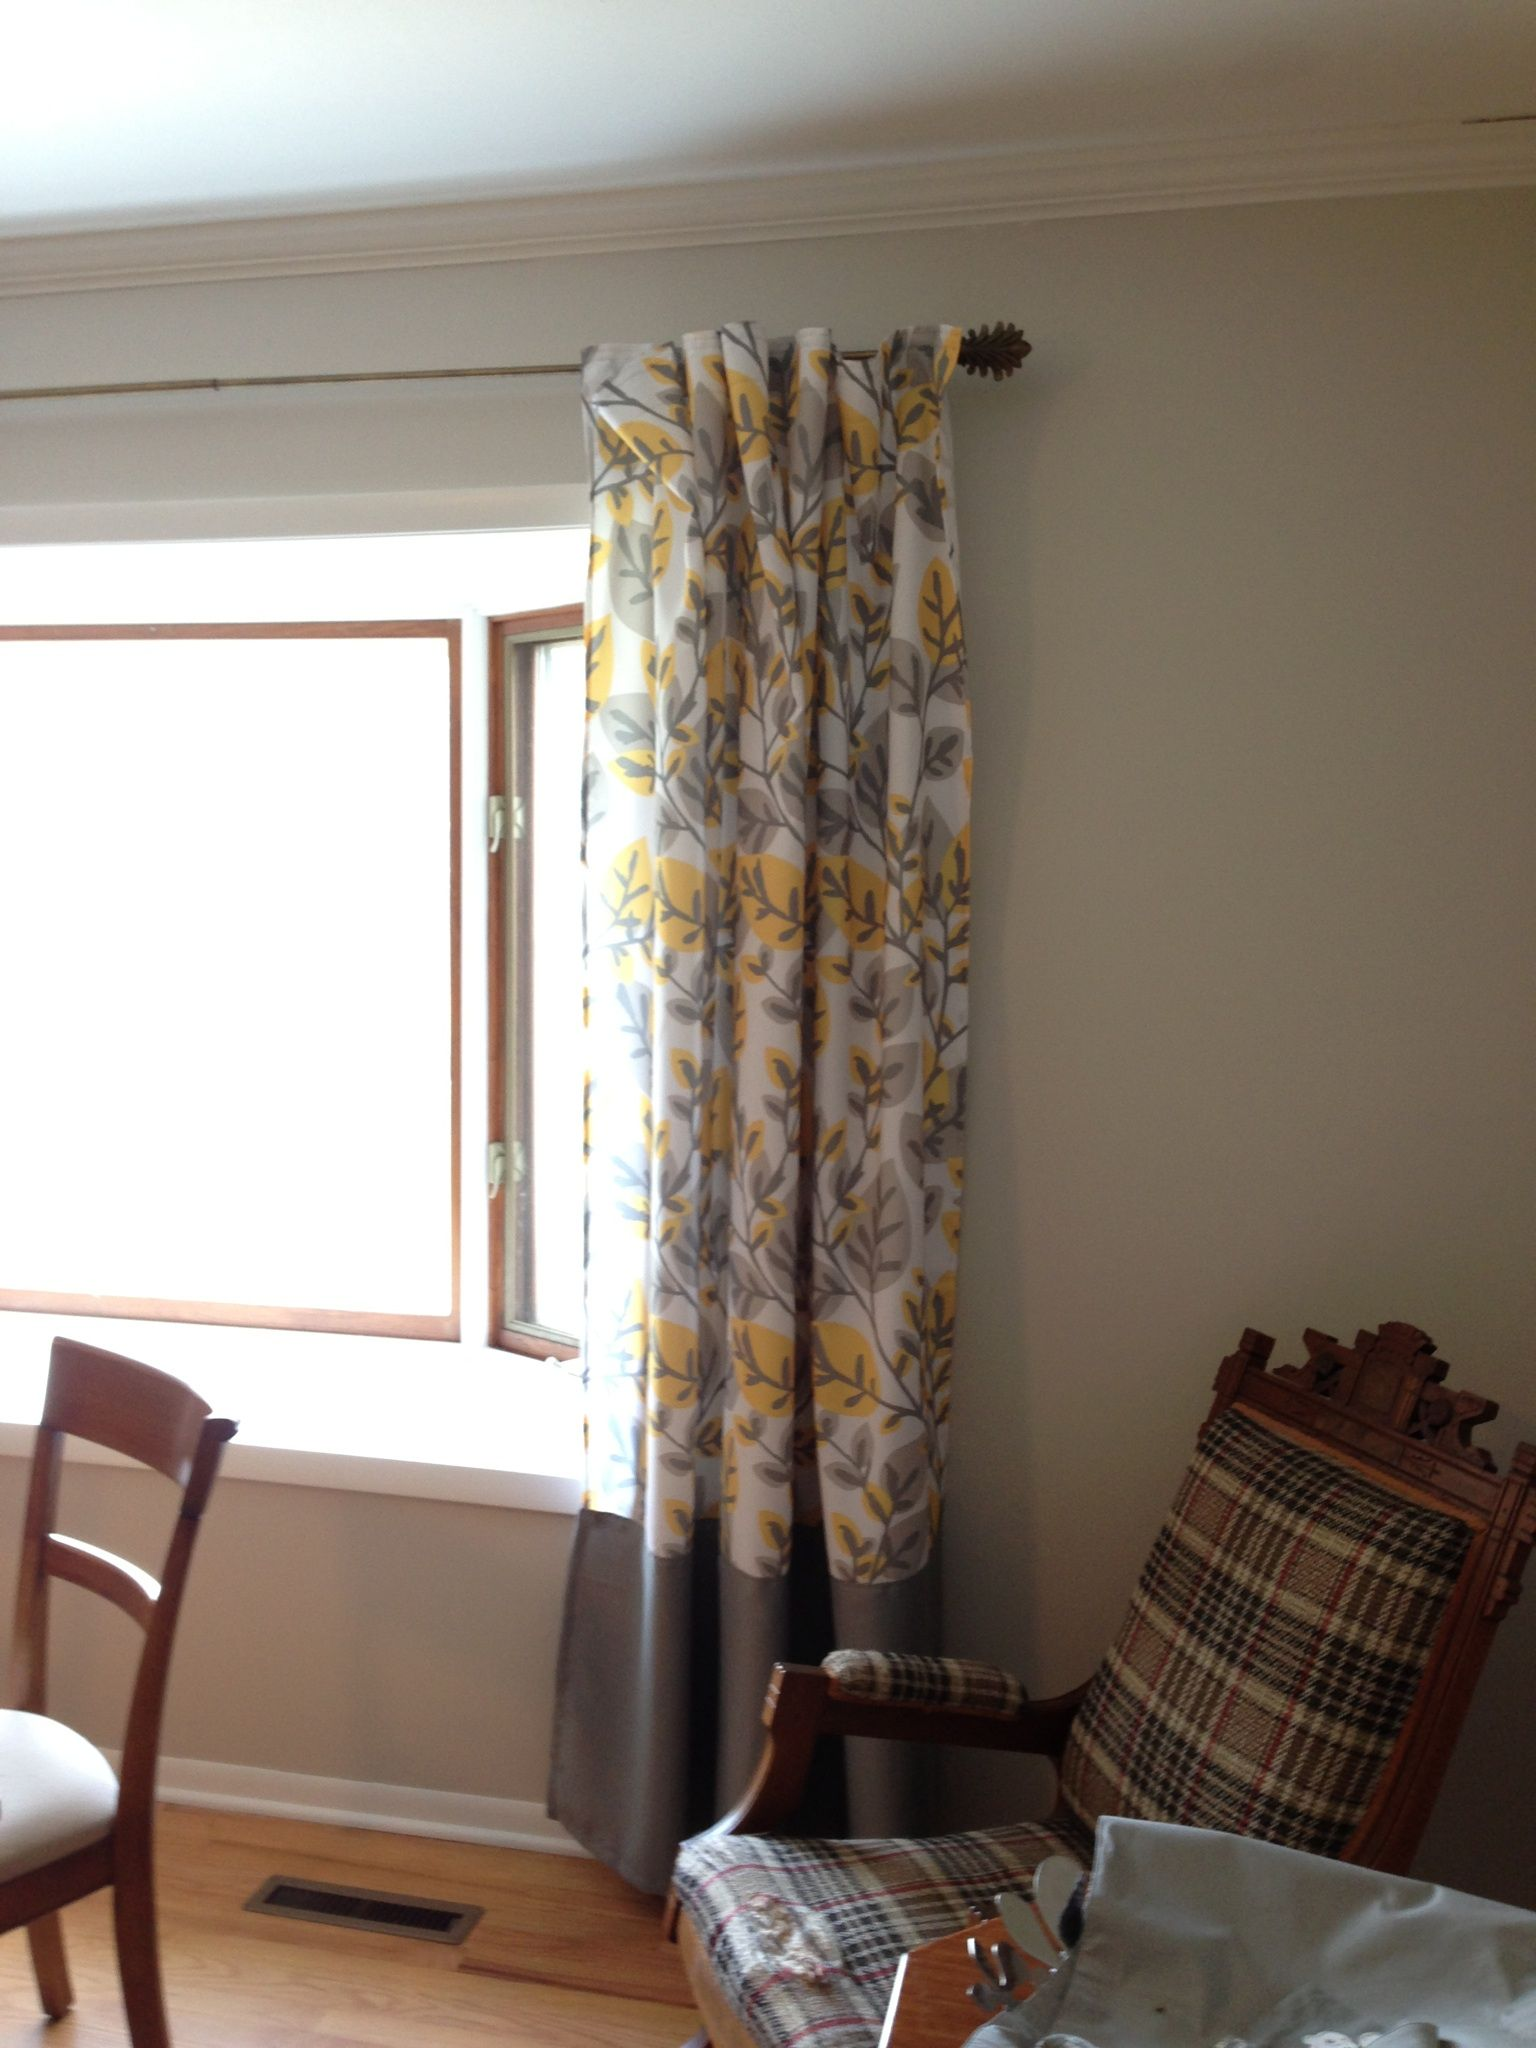 Modified shower curtain drapes. Buy 2 standard fabric shower ...